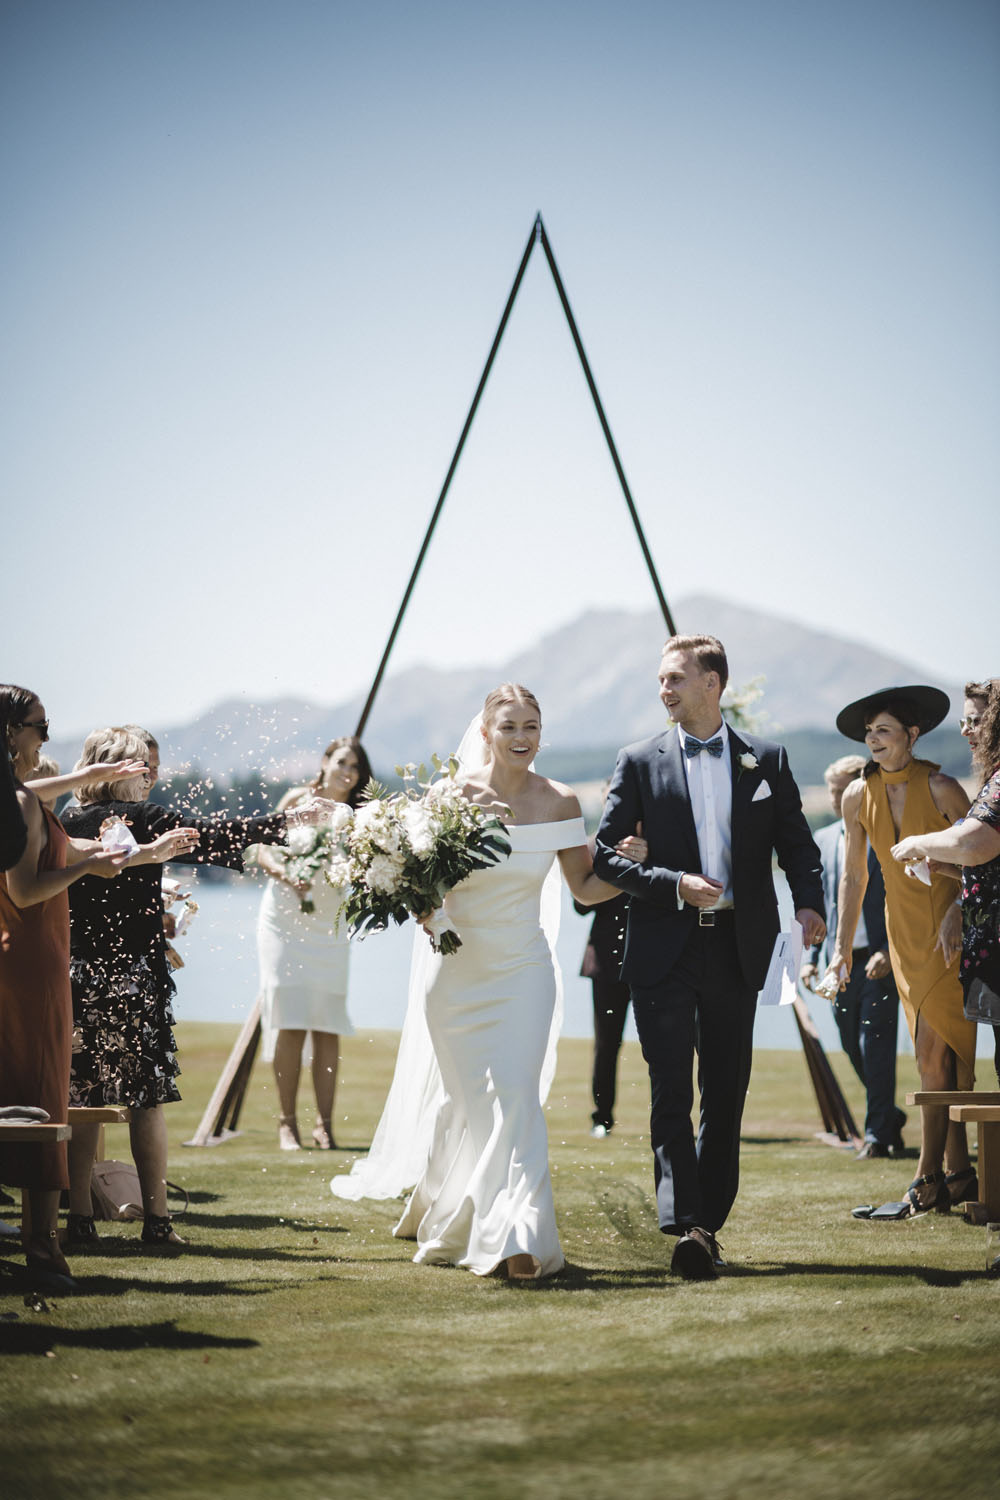 Say Your Vows on Wanaka's Lake Edge - For brides who are looking for a venue with a view, it simply doesn't get any better than Edgewater Wanaka. This spacious hotel sits right on the edge of Lake Wanaka, making it the only wedding venue on the coast where couples can get married directly on the lake's edge. Every spot on the grounds is picture-perfect and, for couples seeking something even more breathtaking, an onsite helicopter pad is available so you can be whisked off for some mountaintop portraits. In addition to the spectacular grounds and location, Edgewater also offers wedding coordination and can help you plan out every moment of your day from the first look to the last dance. You'll be left with picturesque memories that last forever!Visit WebsiteLake Wanaka, New ZealandPhone: +64 3 443 0017Email: events@edgewater.co.nz